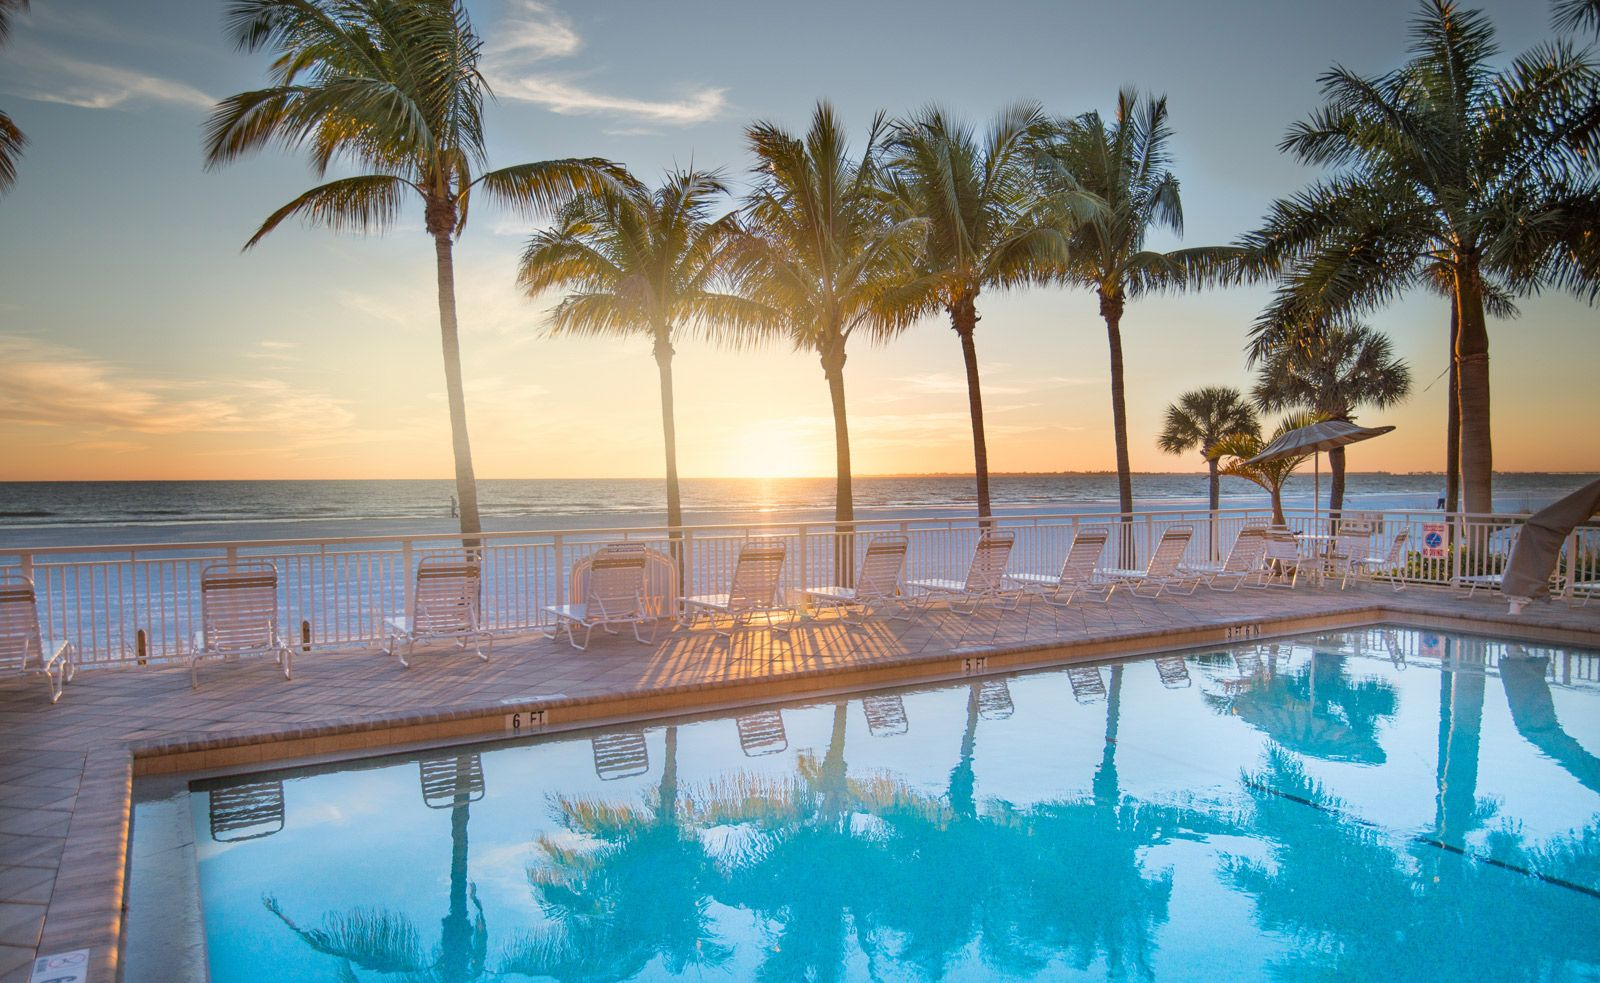 Looking For Hotels Near Fort Myers Beach In Florida The Award Winning Best Western Resort Offers Great Hospitality Waterfront Views